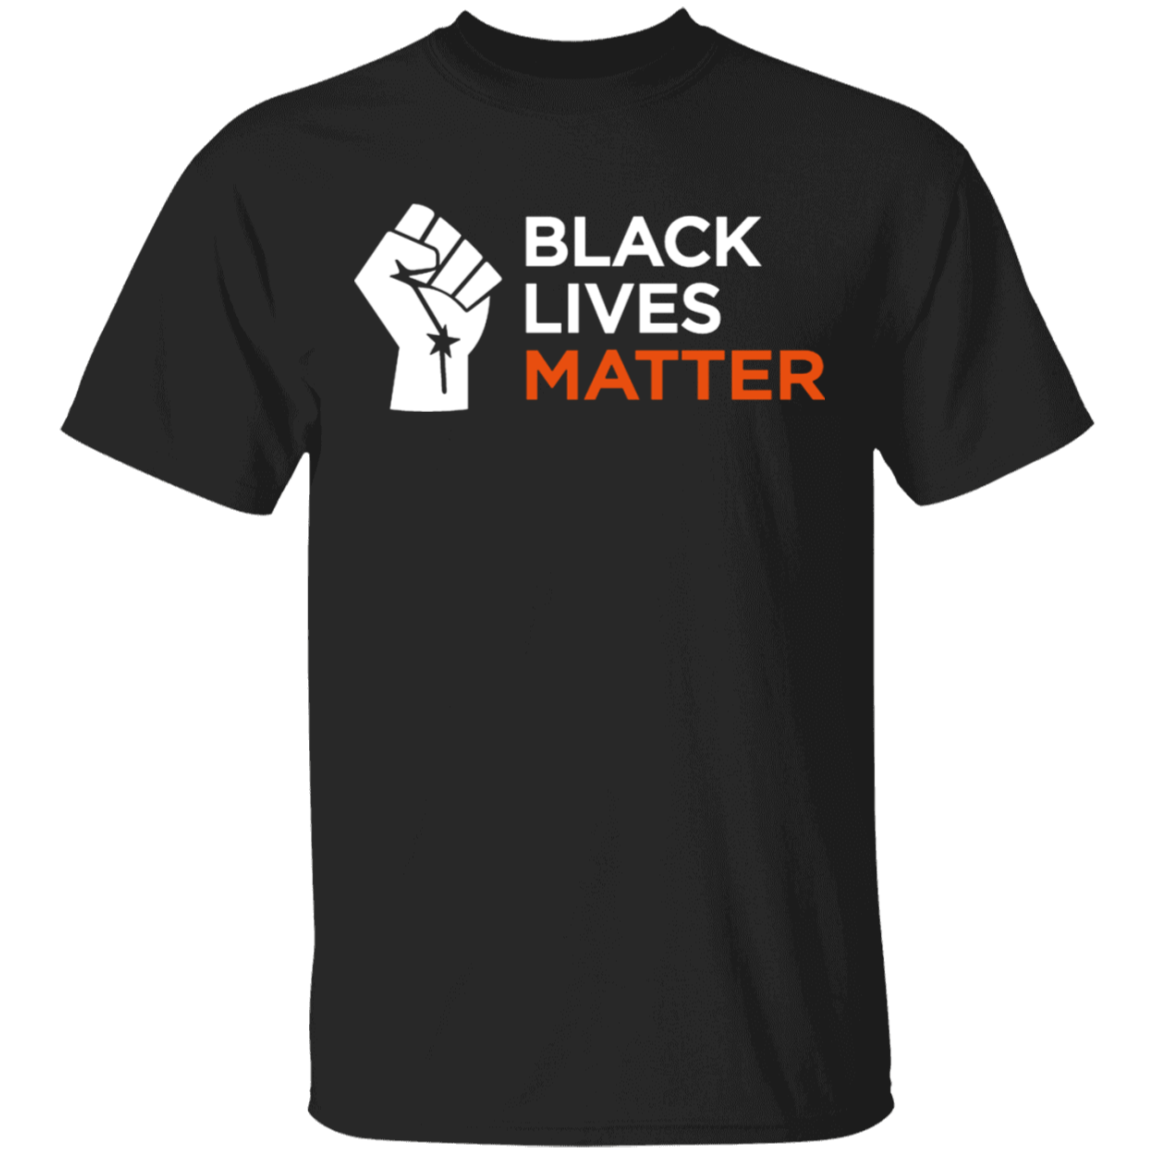 Black Lives Matter TShirt Blm Fist Shirt in 2020 Black